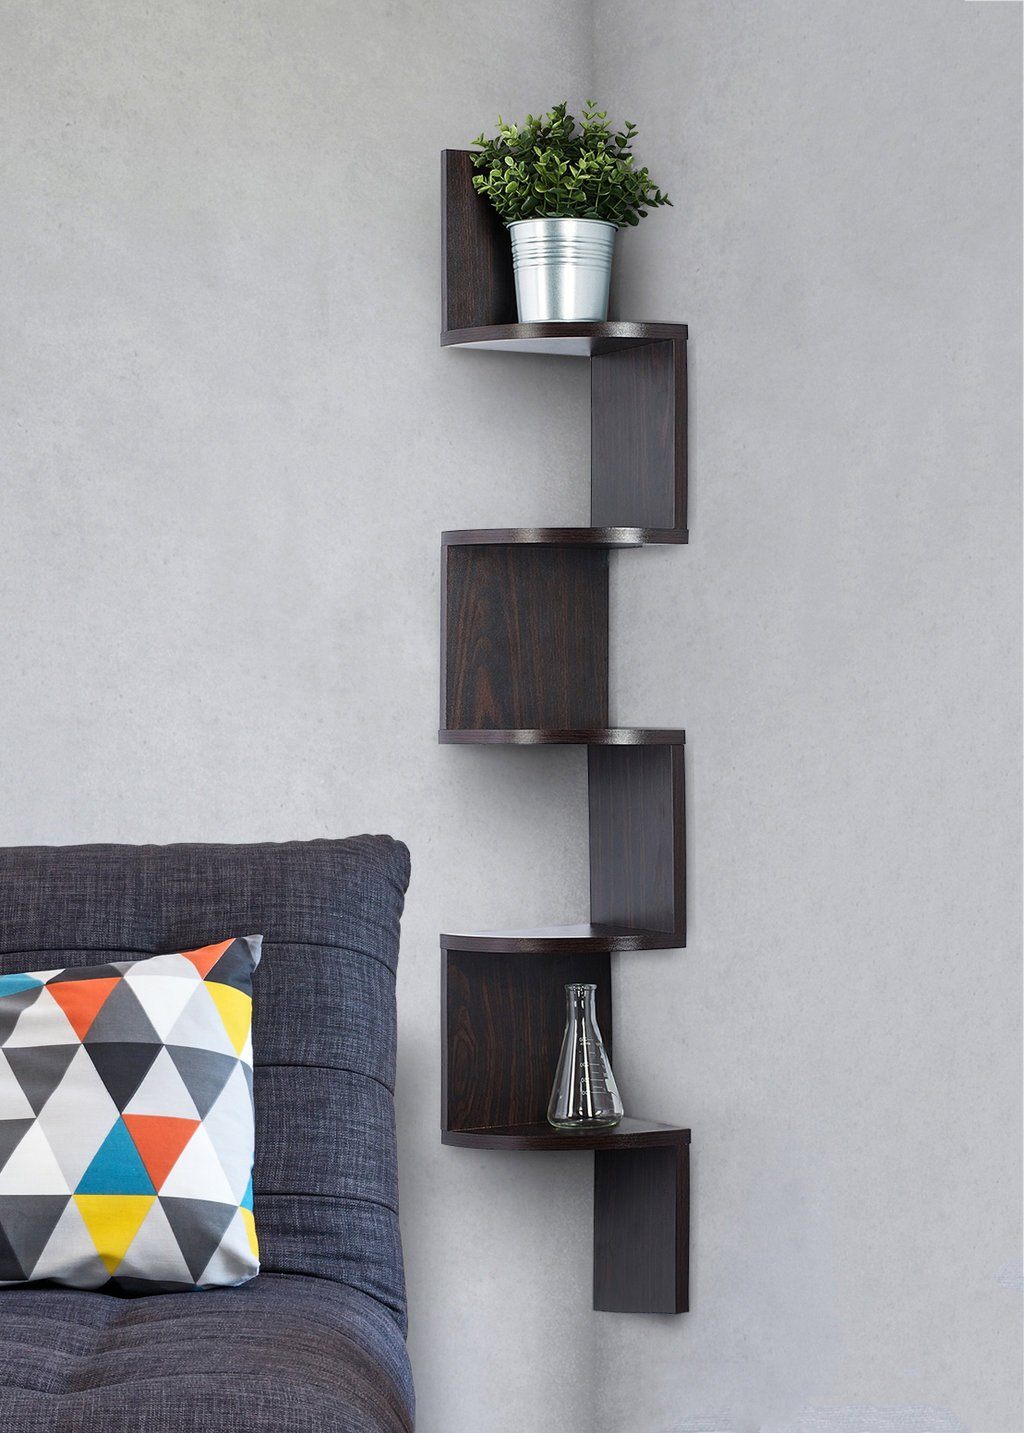 corner shelf espresso finish unit tier shelves can used for bookshelf any decor sagler inch floating bunnings shelving tures kitchens with open command strips weight capacity